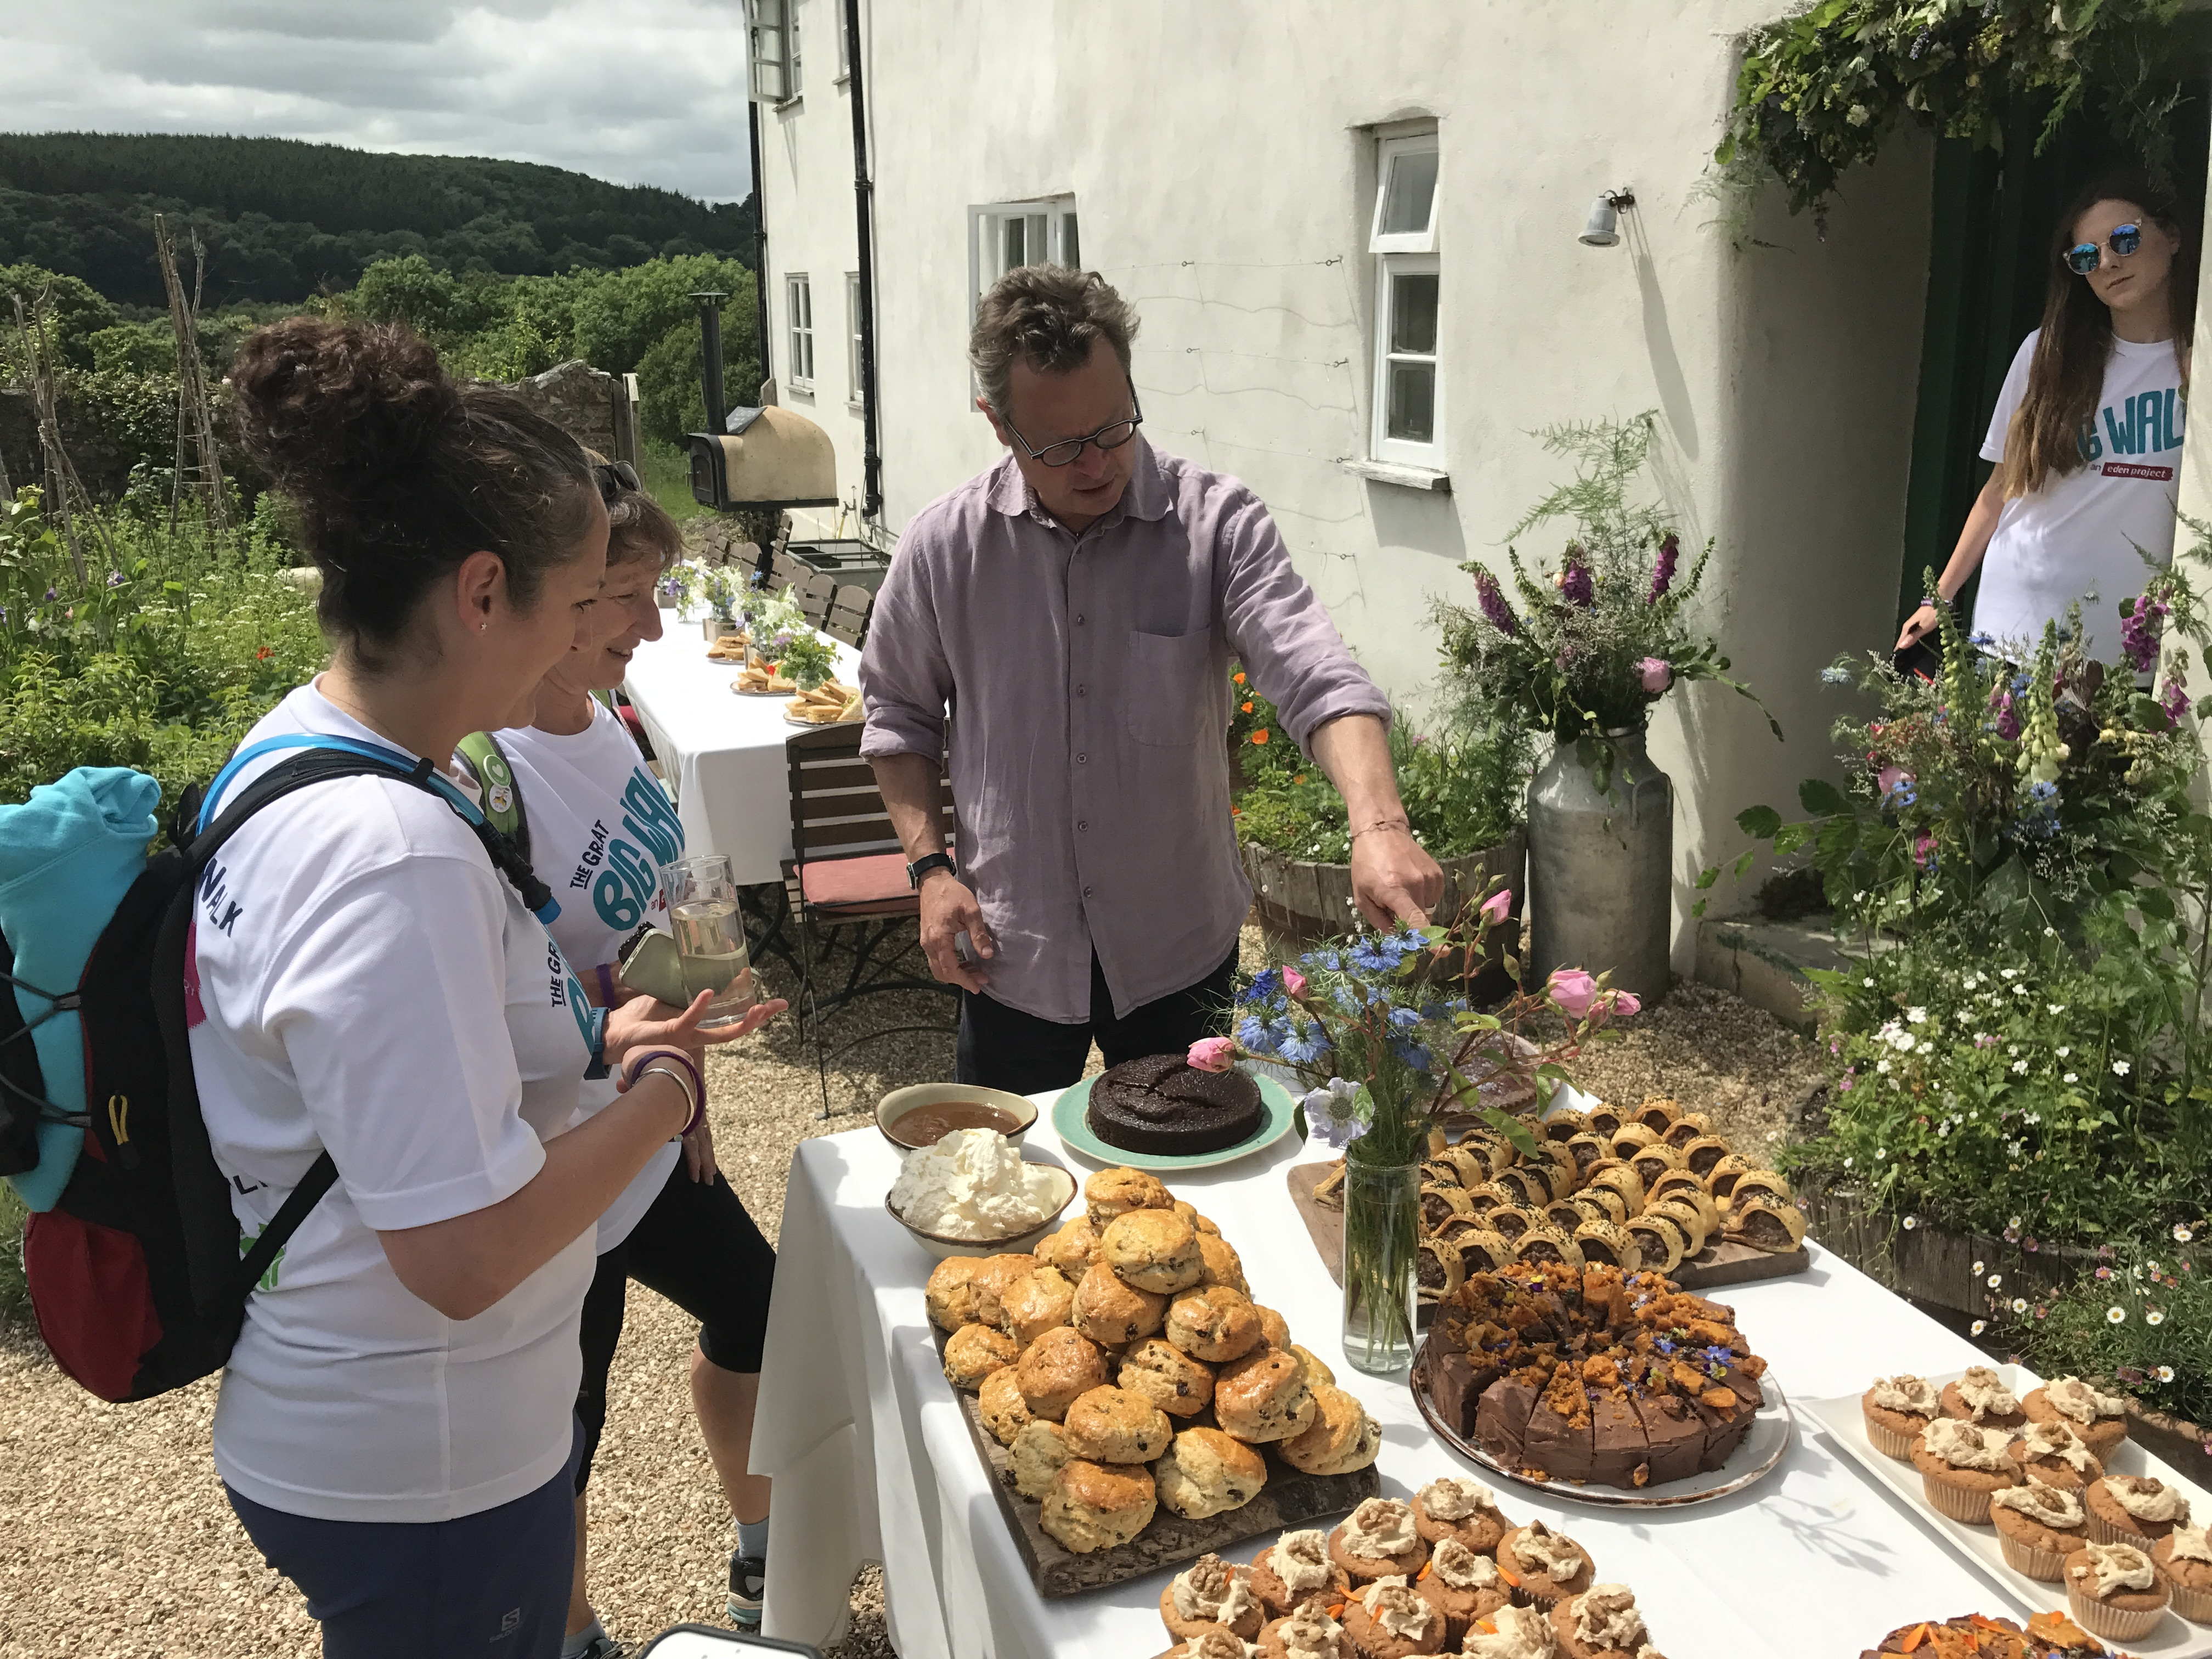 Hugh showing Jude and Jane the feast at River Cottage.